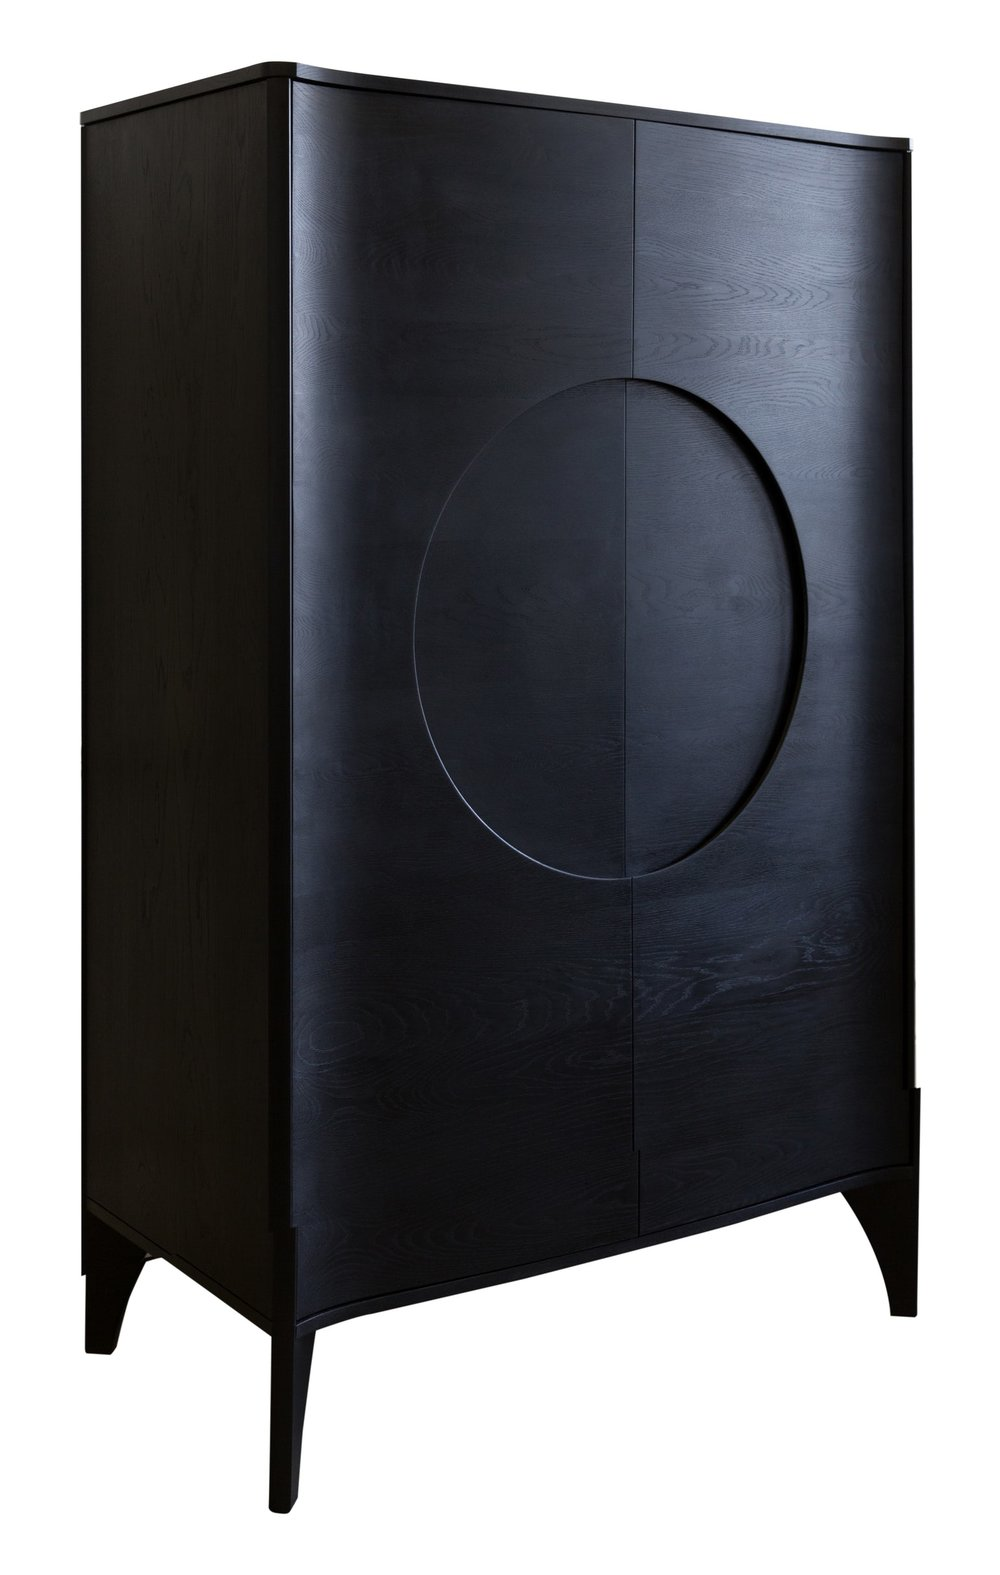 "NESTEDNY. ""Noah Drinks Cabinet."" Dering Hall, NESTEDNY, 2018, deringhall.com/noah-drinks-cabinet.   The indent area reminds me the traditional Chinese bronze door latches. Historically, circular latch plates are often used on cabinet doors like this. The central circular indent has angle edge all the way around, which simply functions as door handle. The door curls with a small angle which infuses some playfulness to this design. Additionally, blackened solid wood provides very graphic and contemporary look to the surface. These interesting and subtle details make the cabinet stands out."